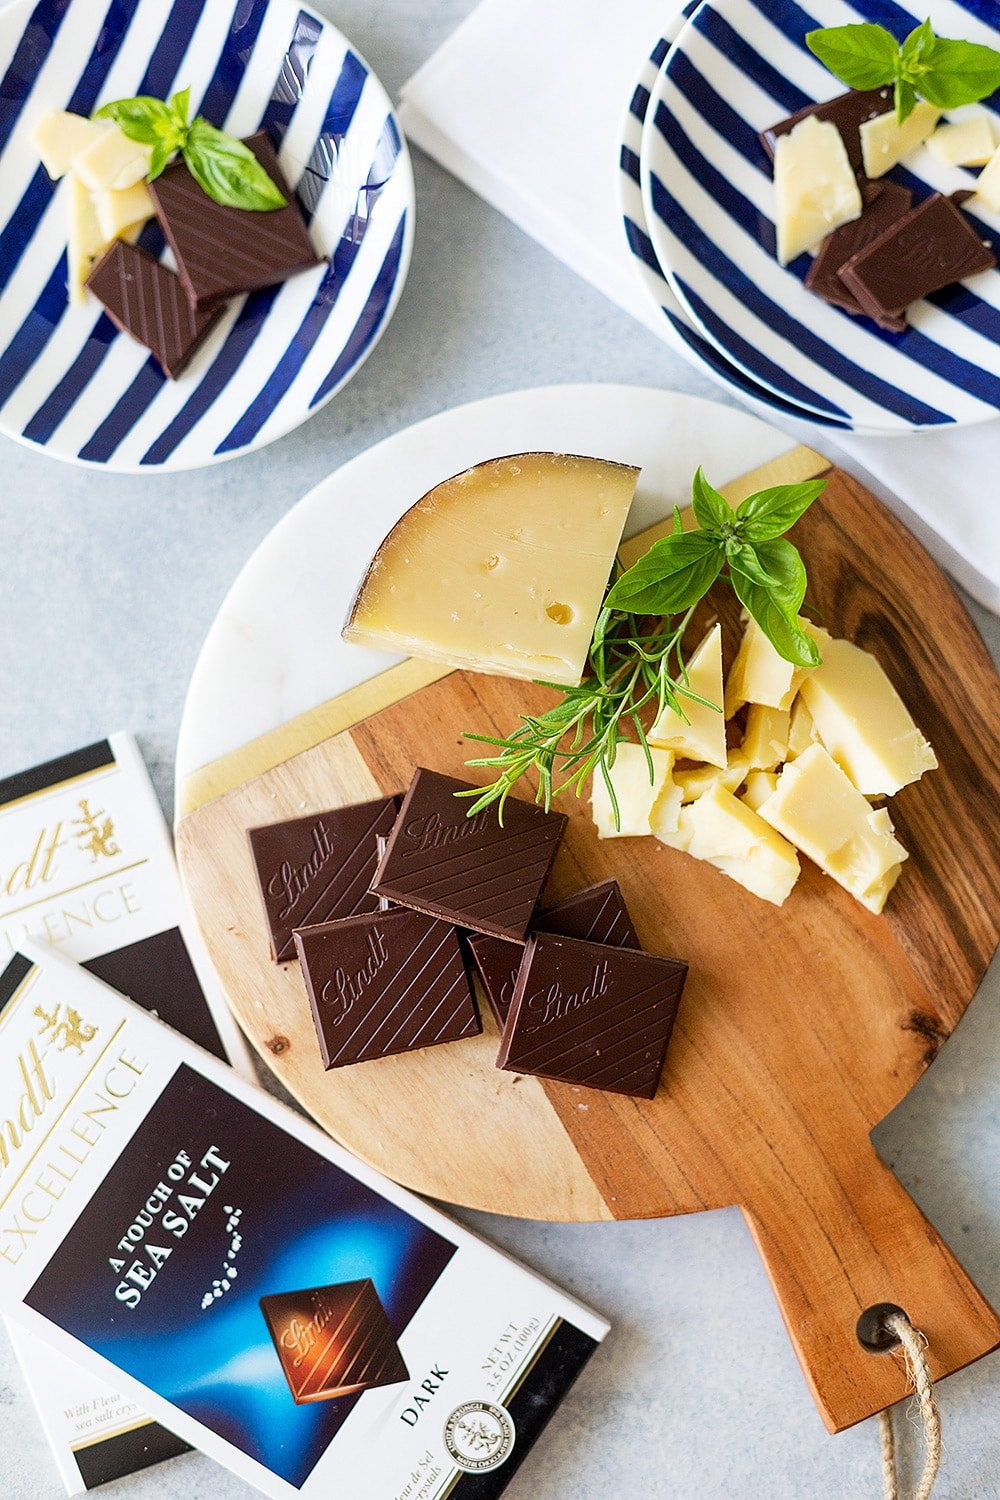 Chocolate and Cheese Pairing